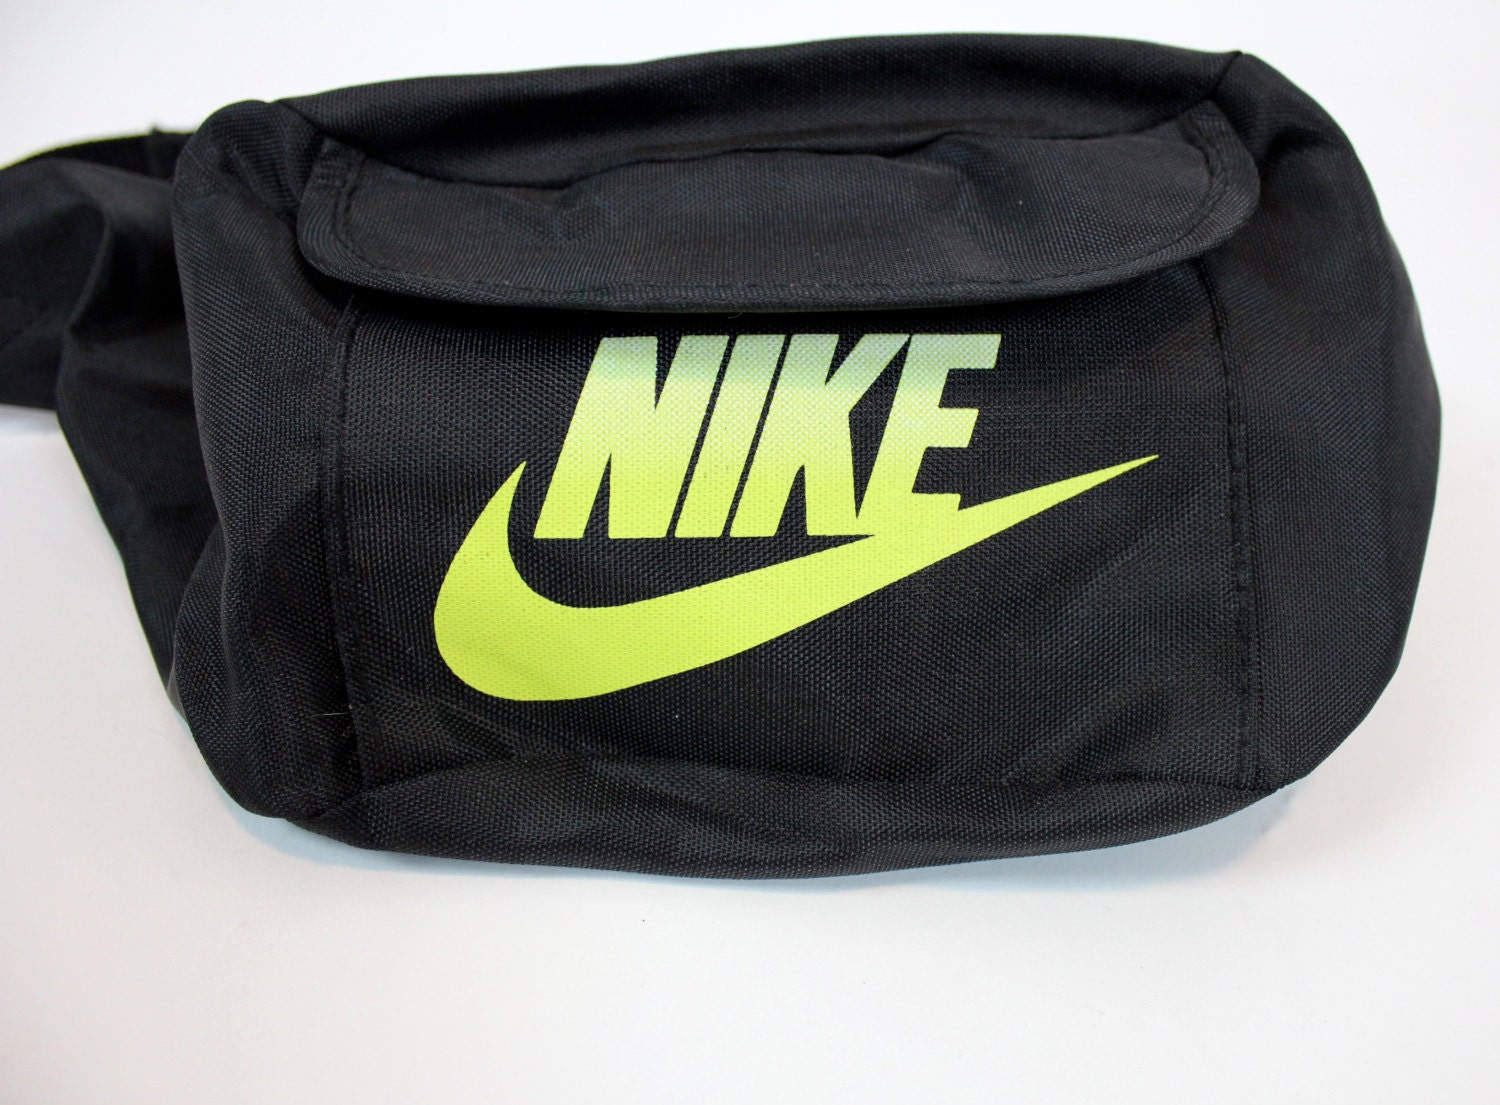 Vintage Nike Neon Green And Black Fanny Pack